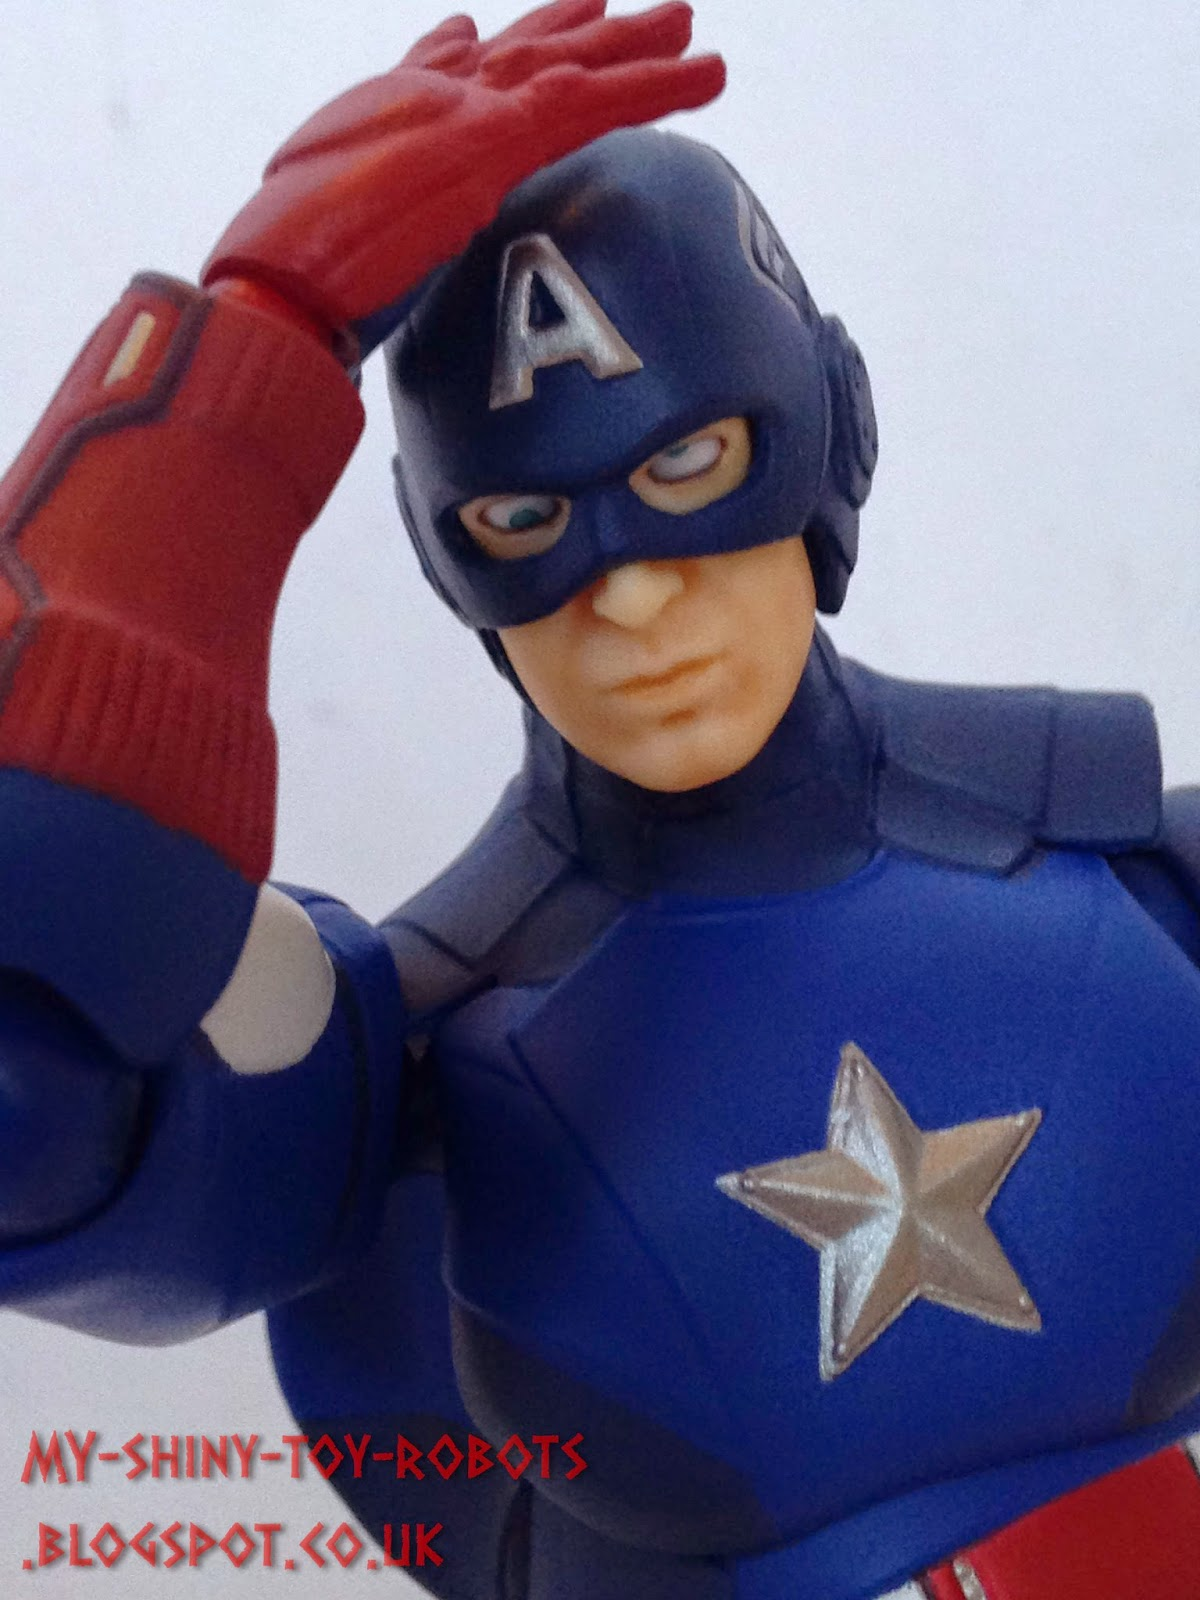 Messing around with Cap's eyes